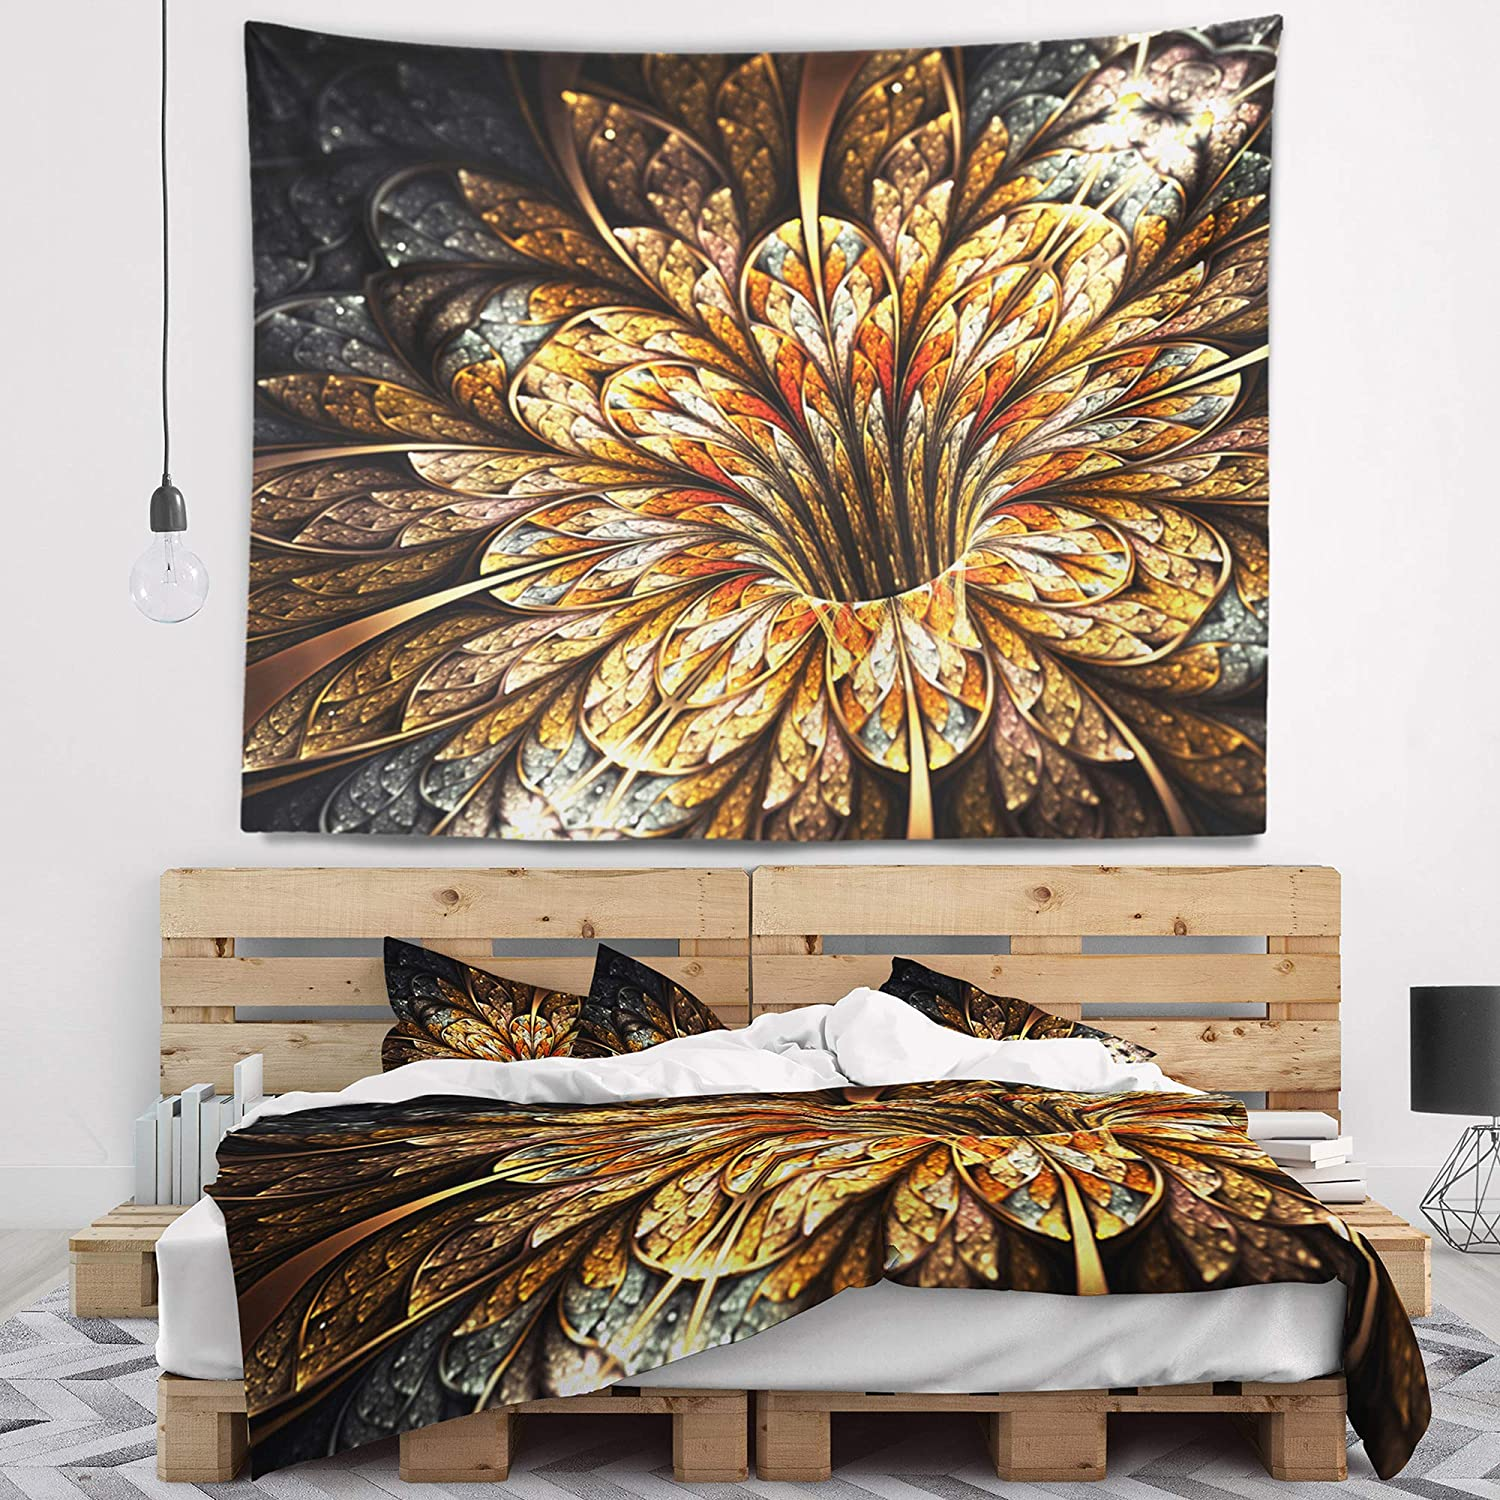 39 in Created On Lightweight Polyester Fabric Designart TAP8884-39-32  Golden Shiny Fractal Flower Floral Blanket D/écor Art for Home and Office Wall Tapestry Medium x 32 in